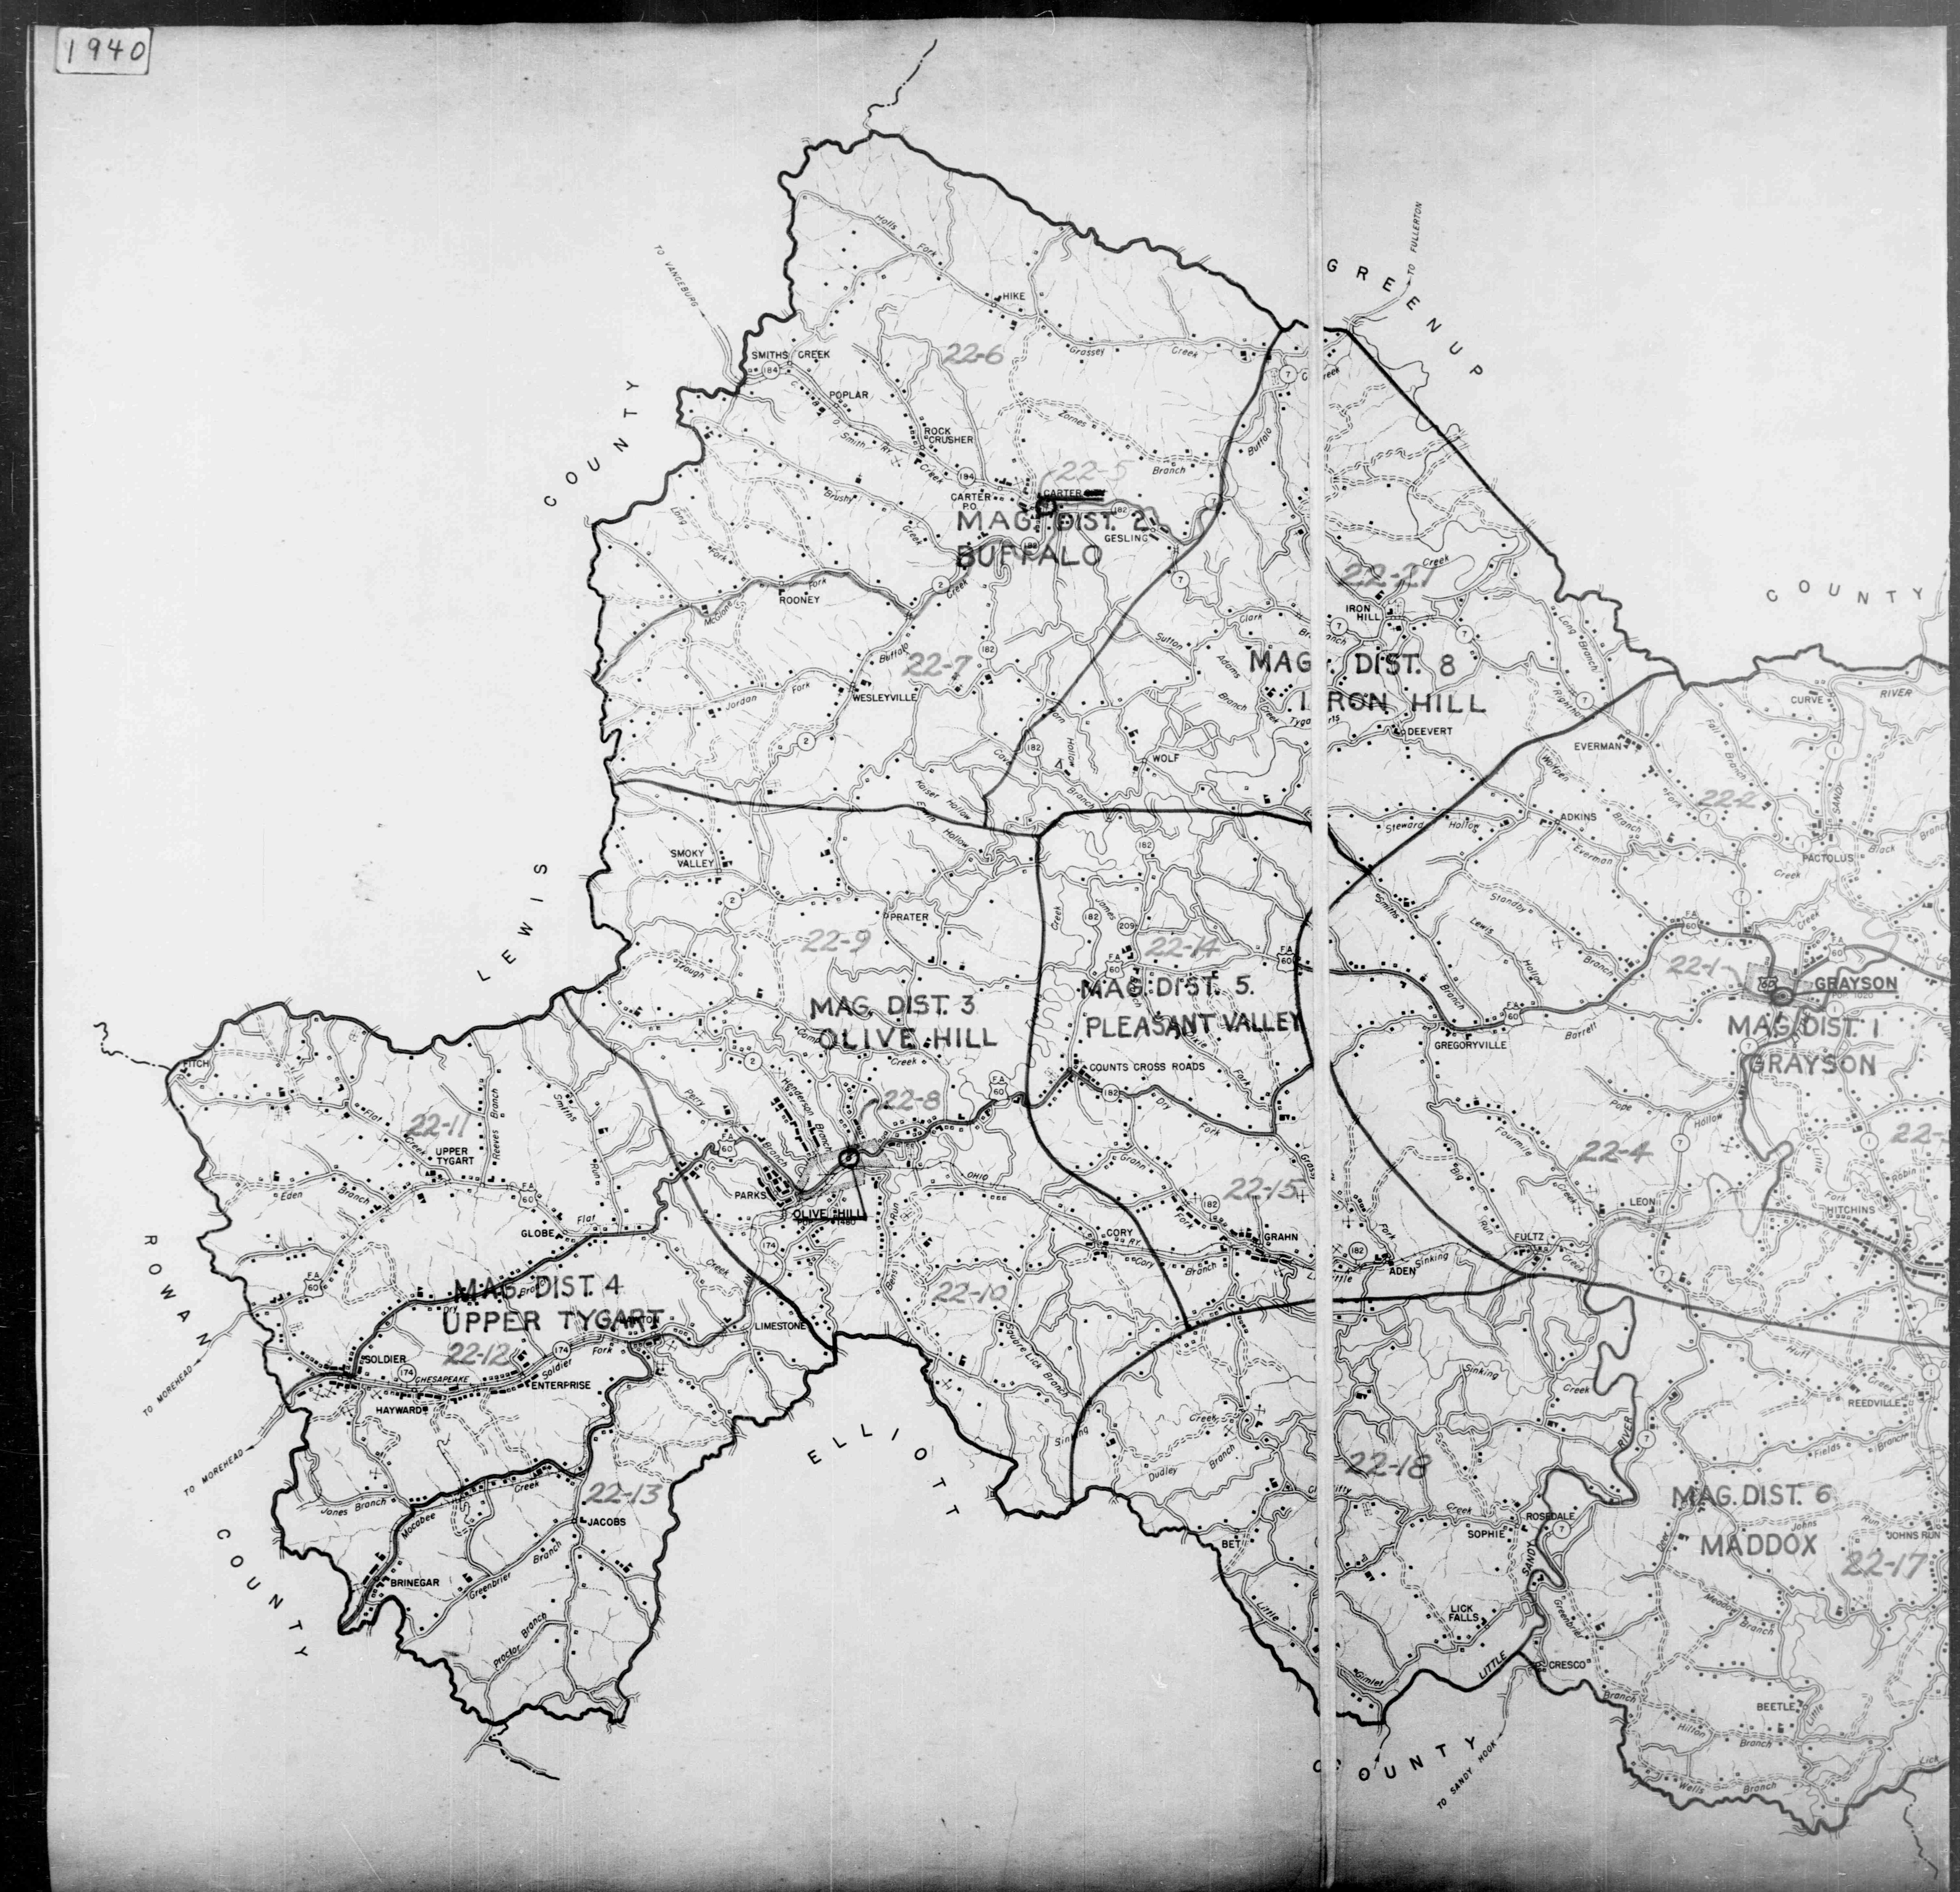 1940 Carter County Map